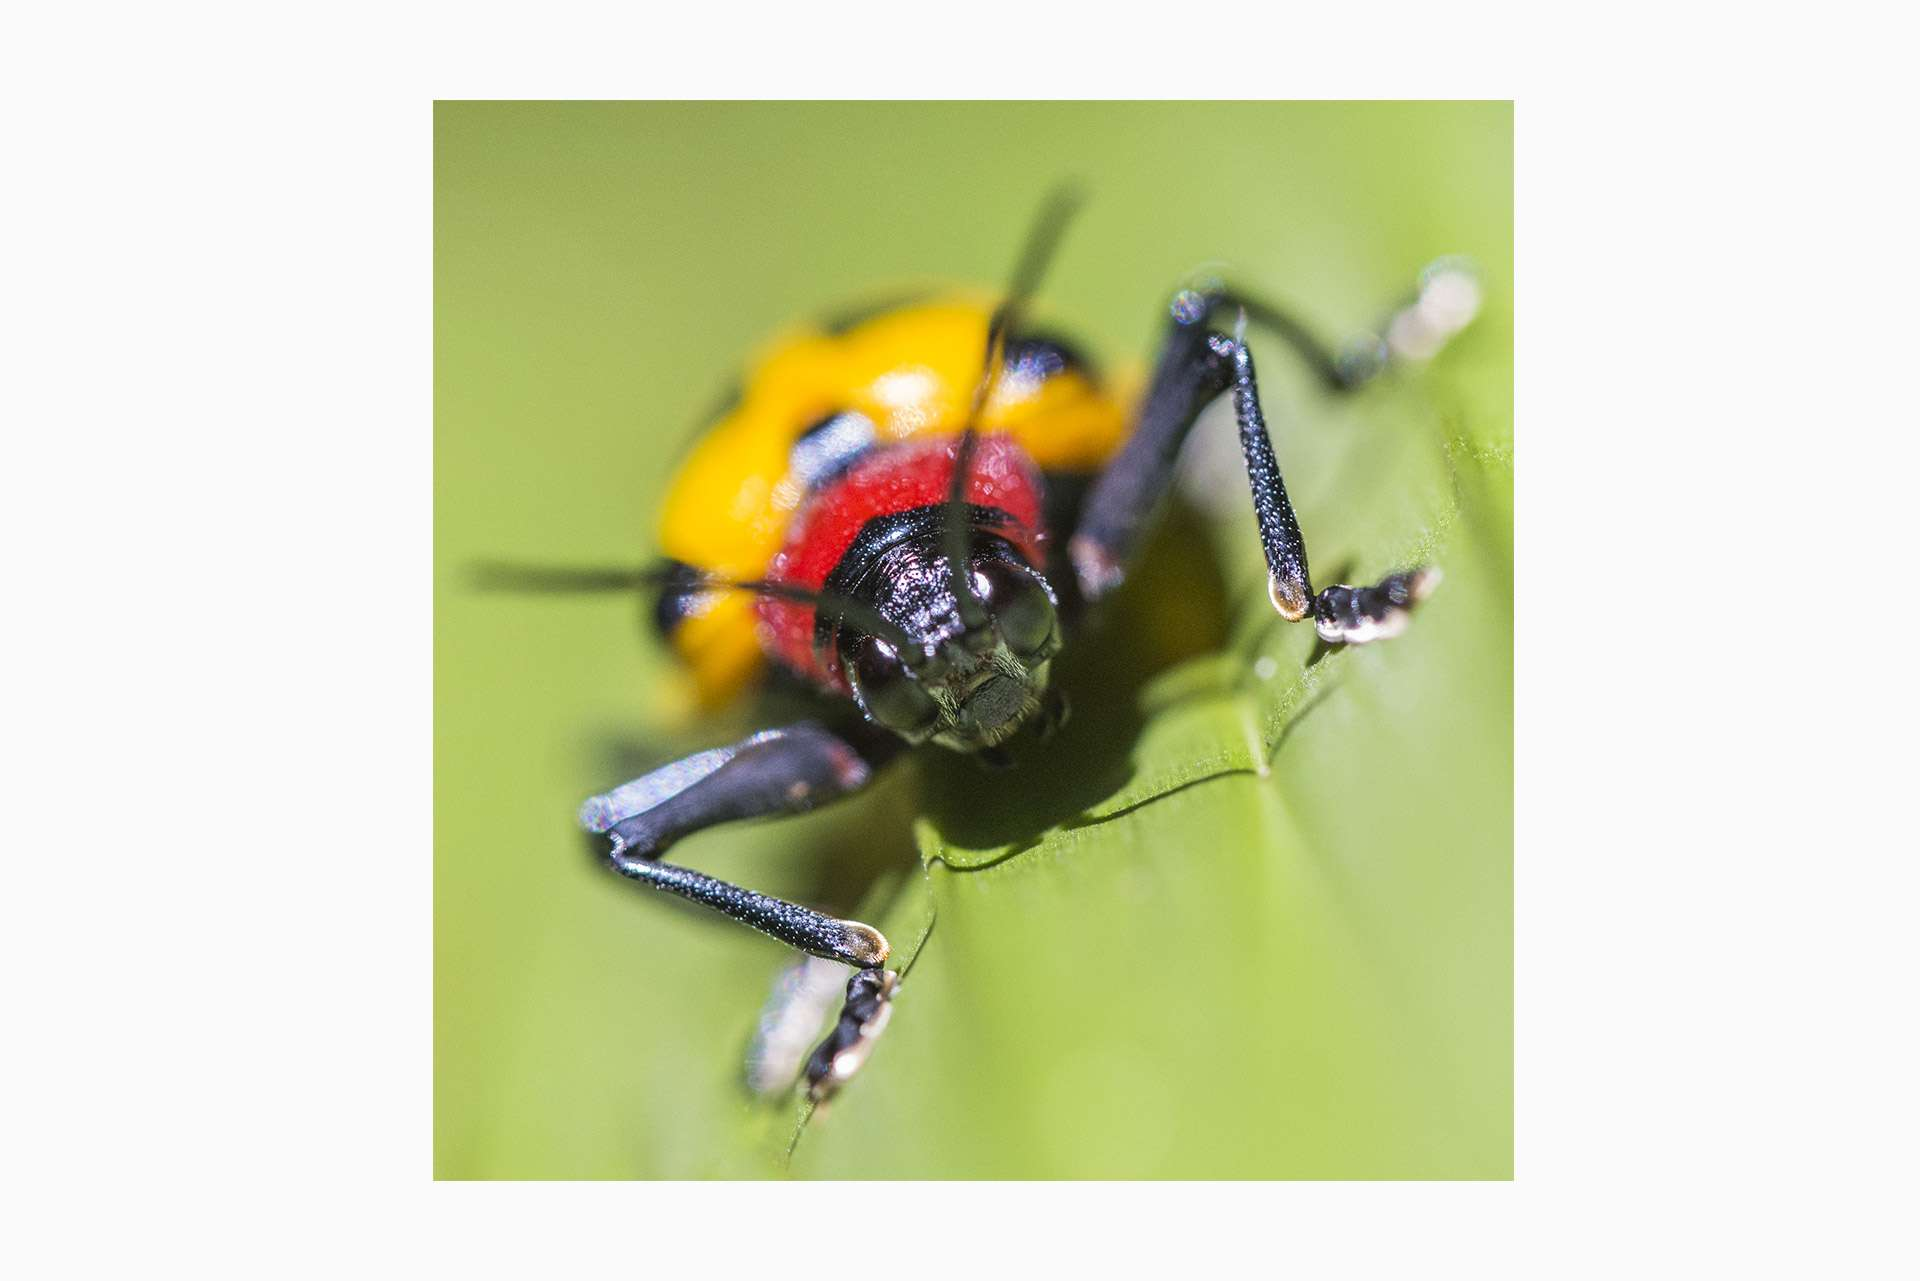 Gilles Martin's photograph of a beetle from Costa Rica